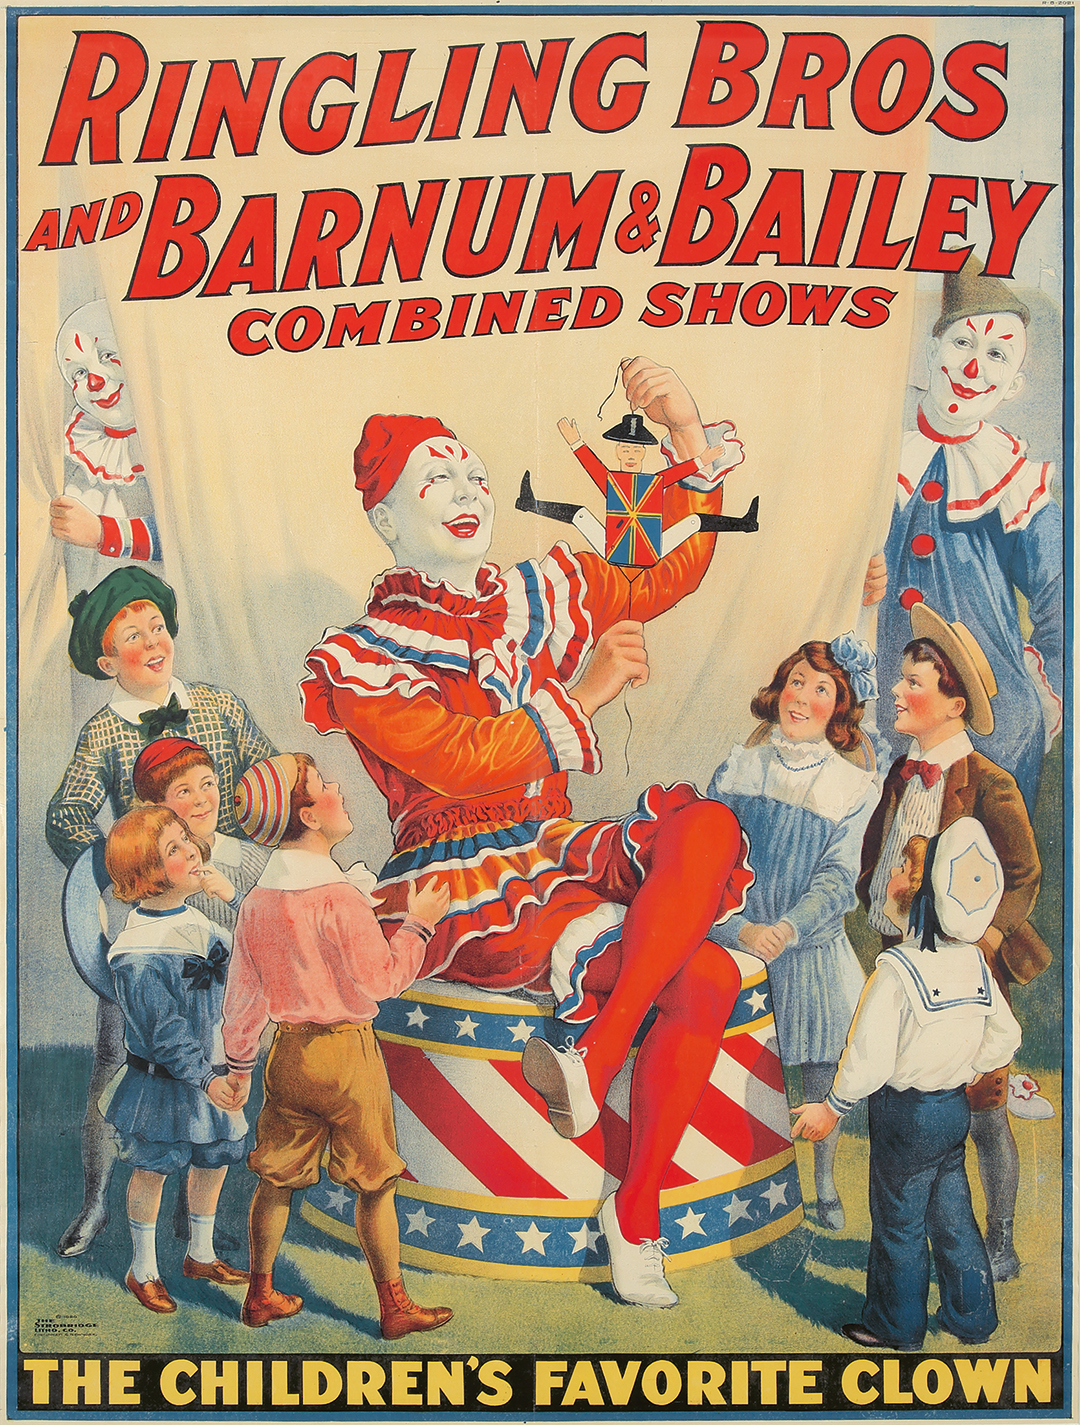 6. Ringling Bros. and Barnum & Bailey/The Children's Favorite Clown. 1920.